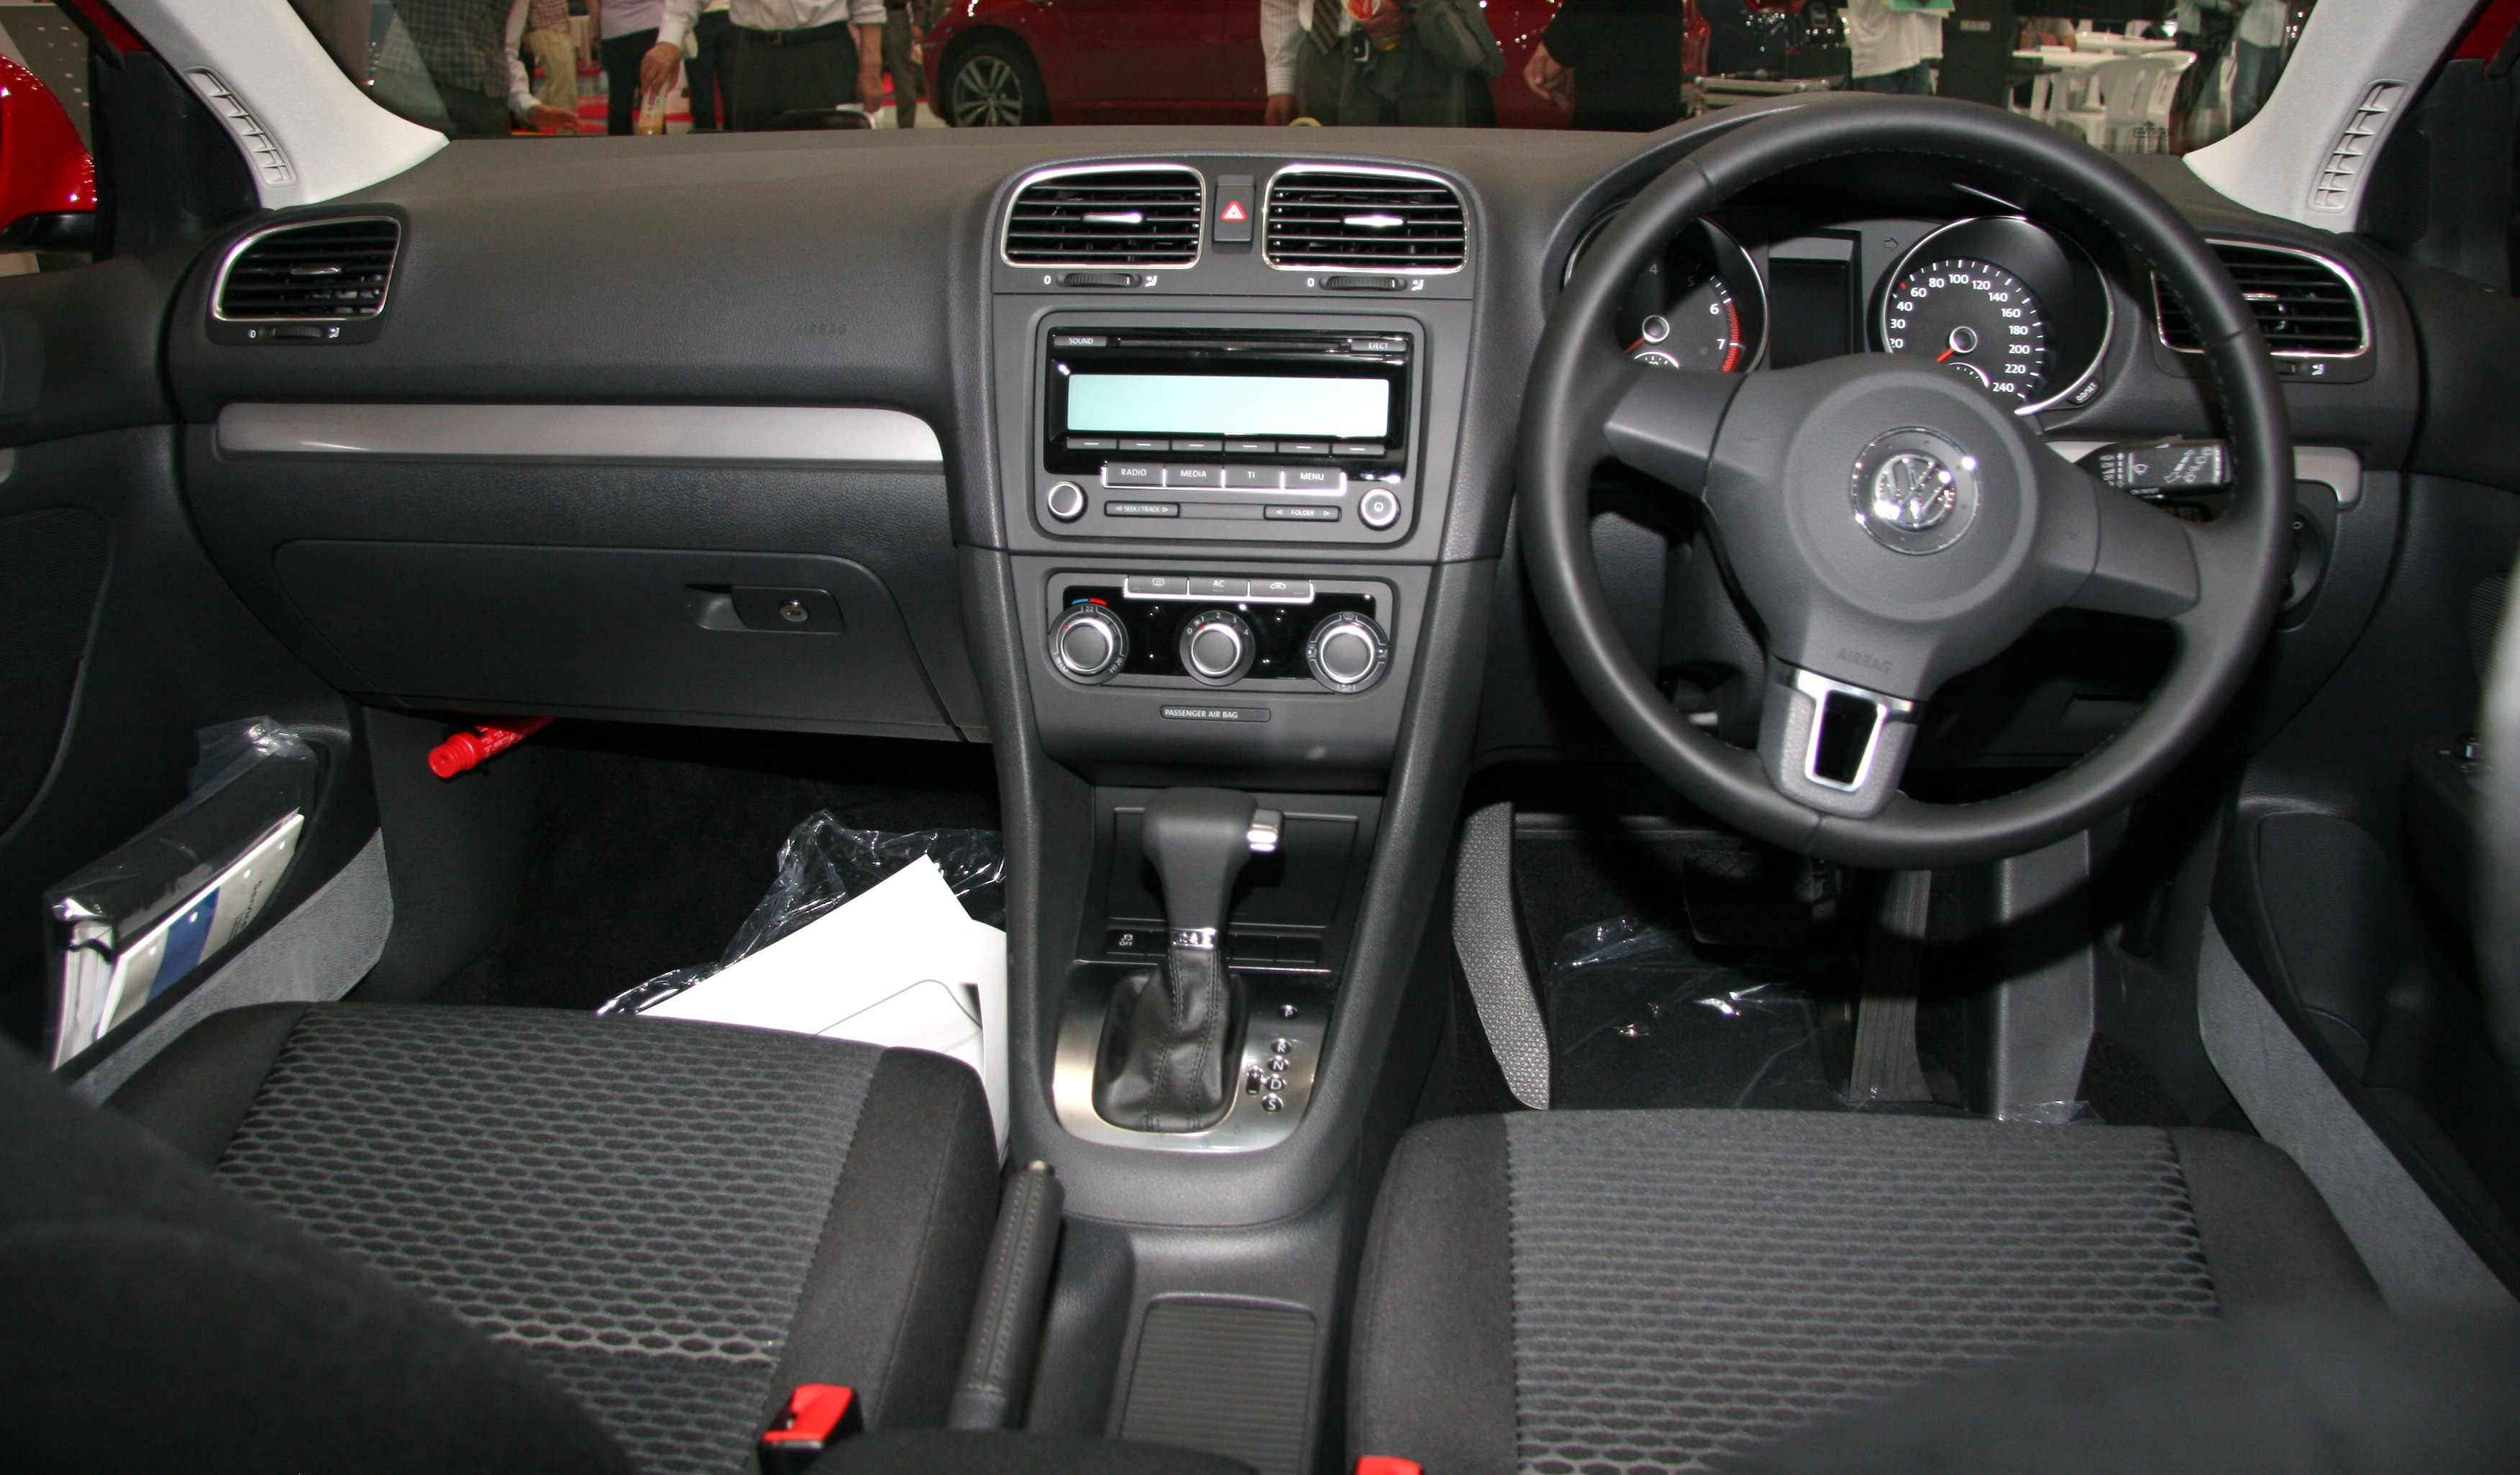 test drive corner volkswagen golf 1 4 tsi. Black Bedroom Furniture Sets. Home Design Ideas